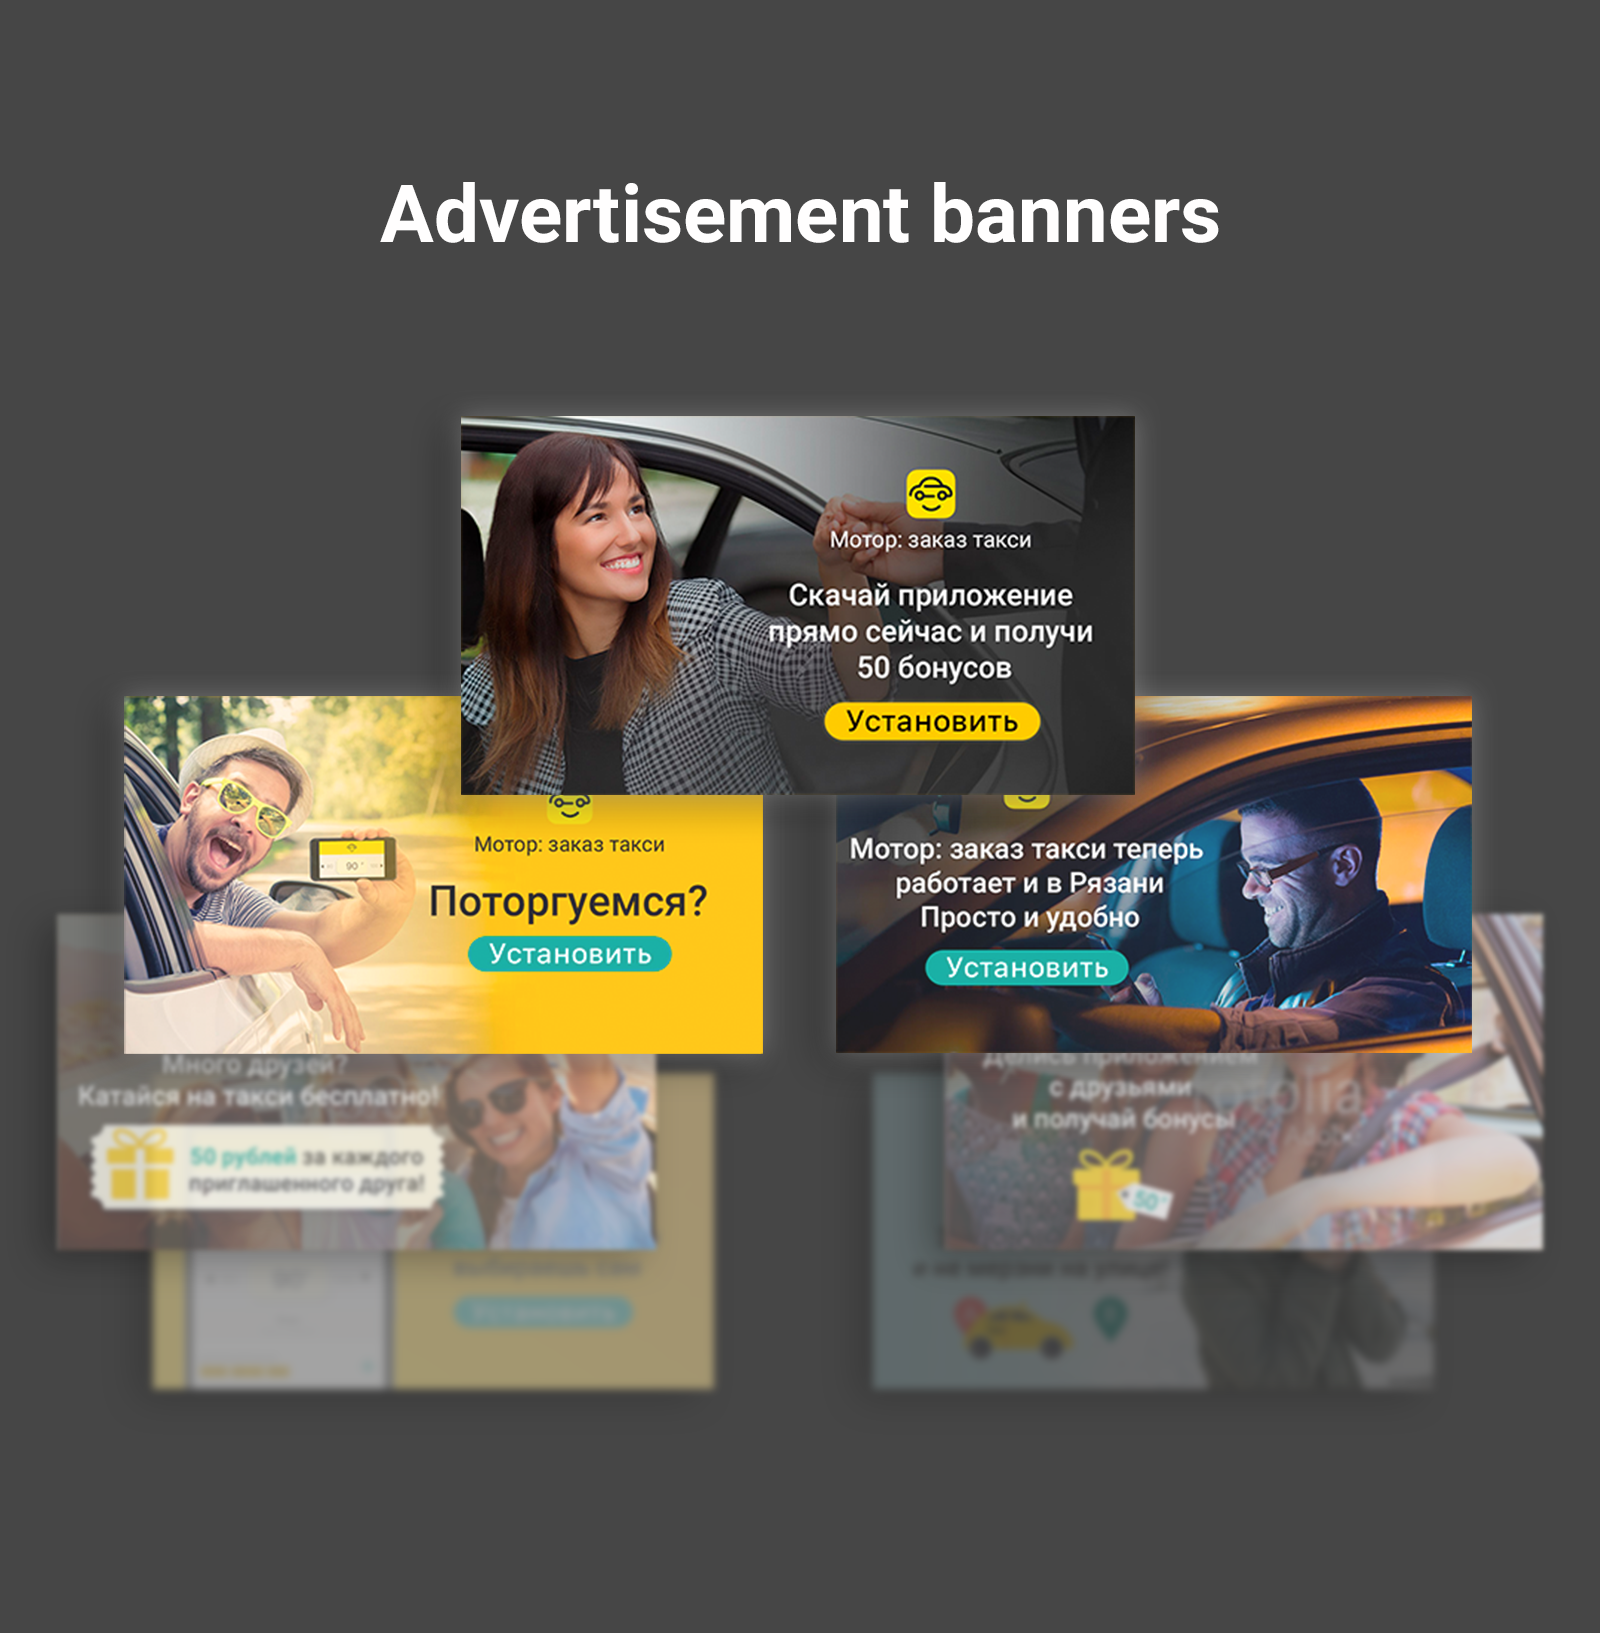 ad_banners